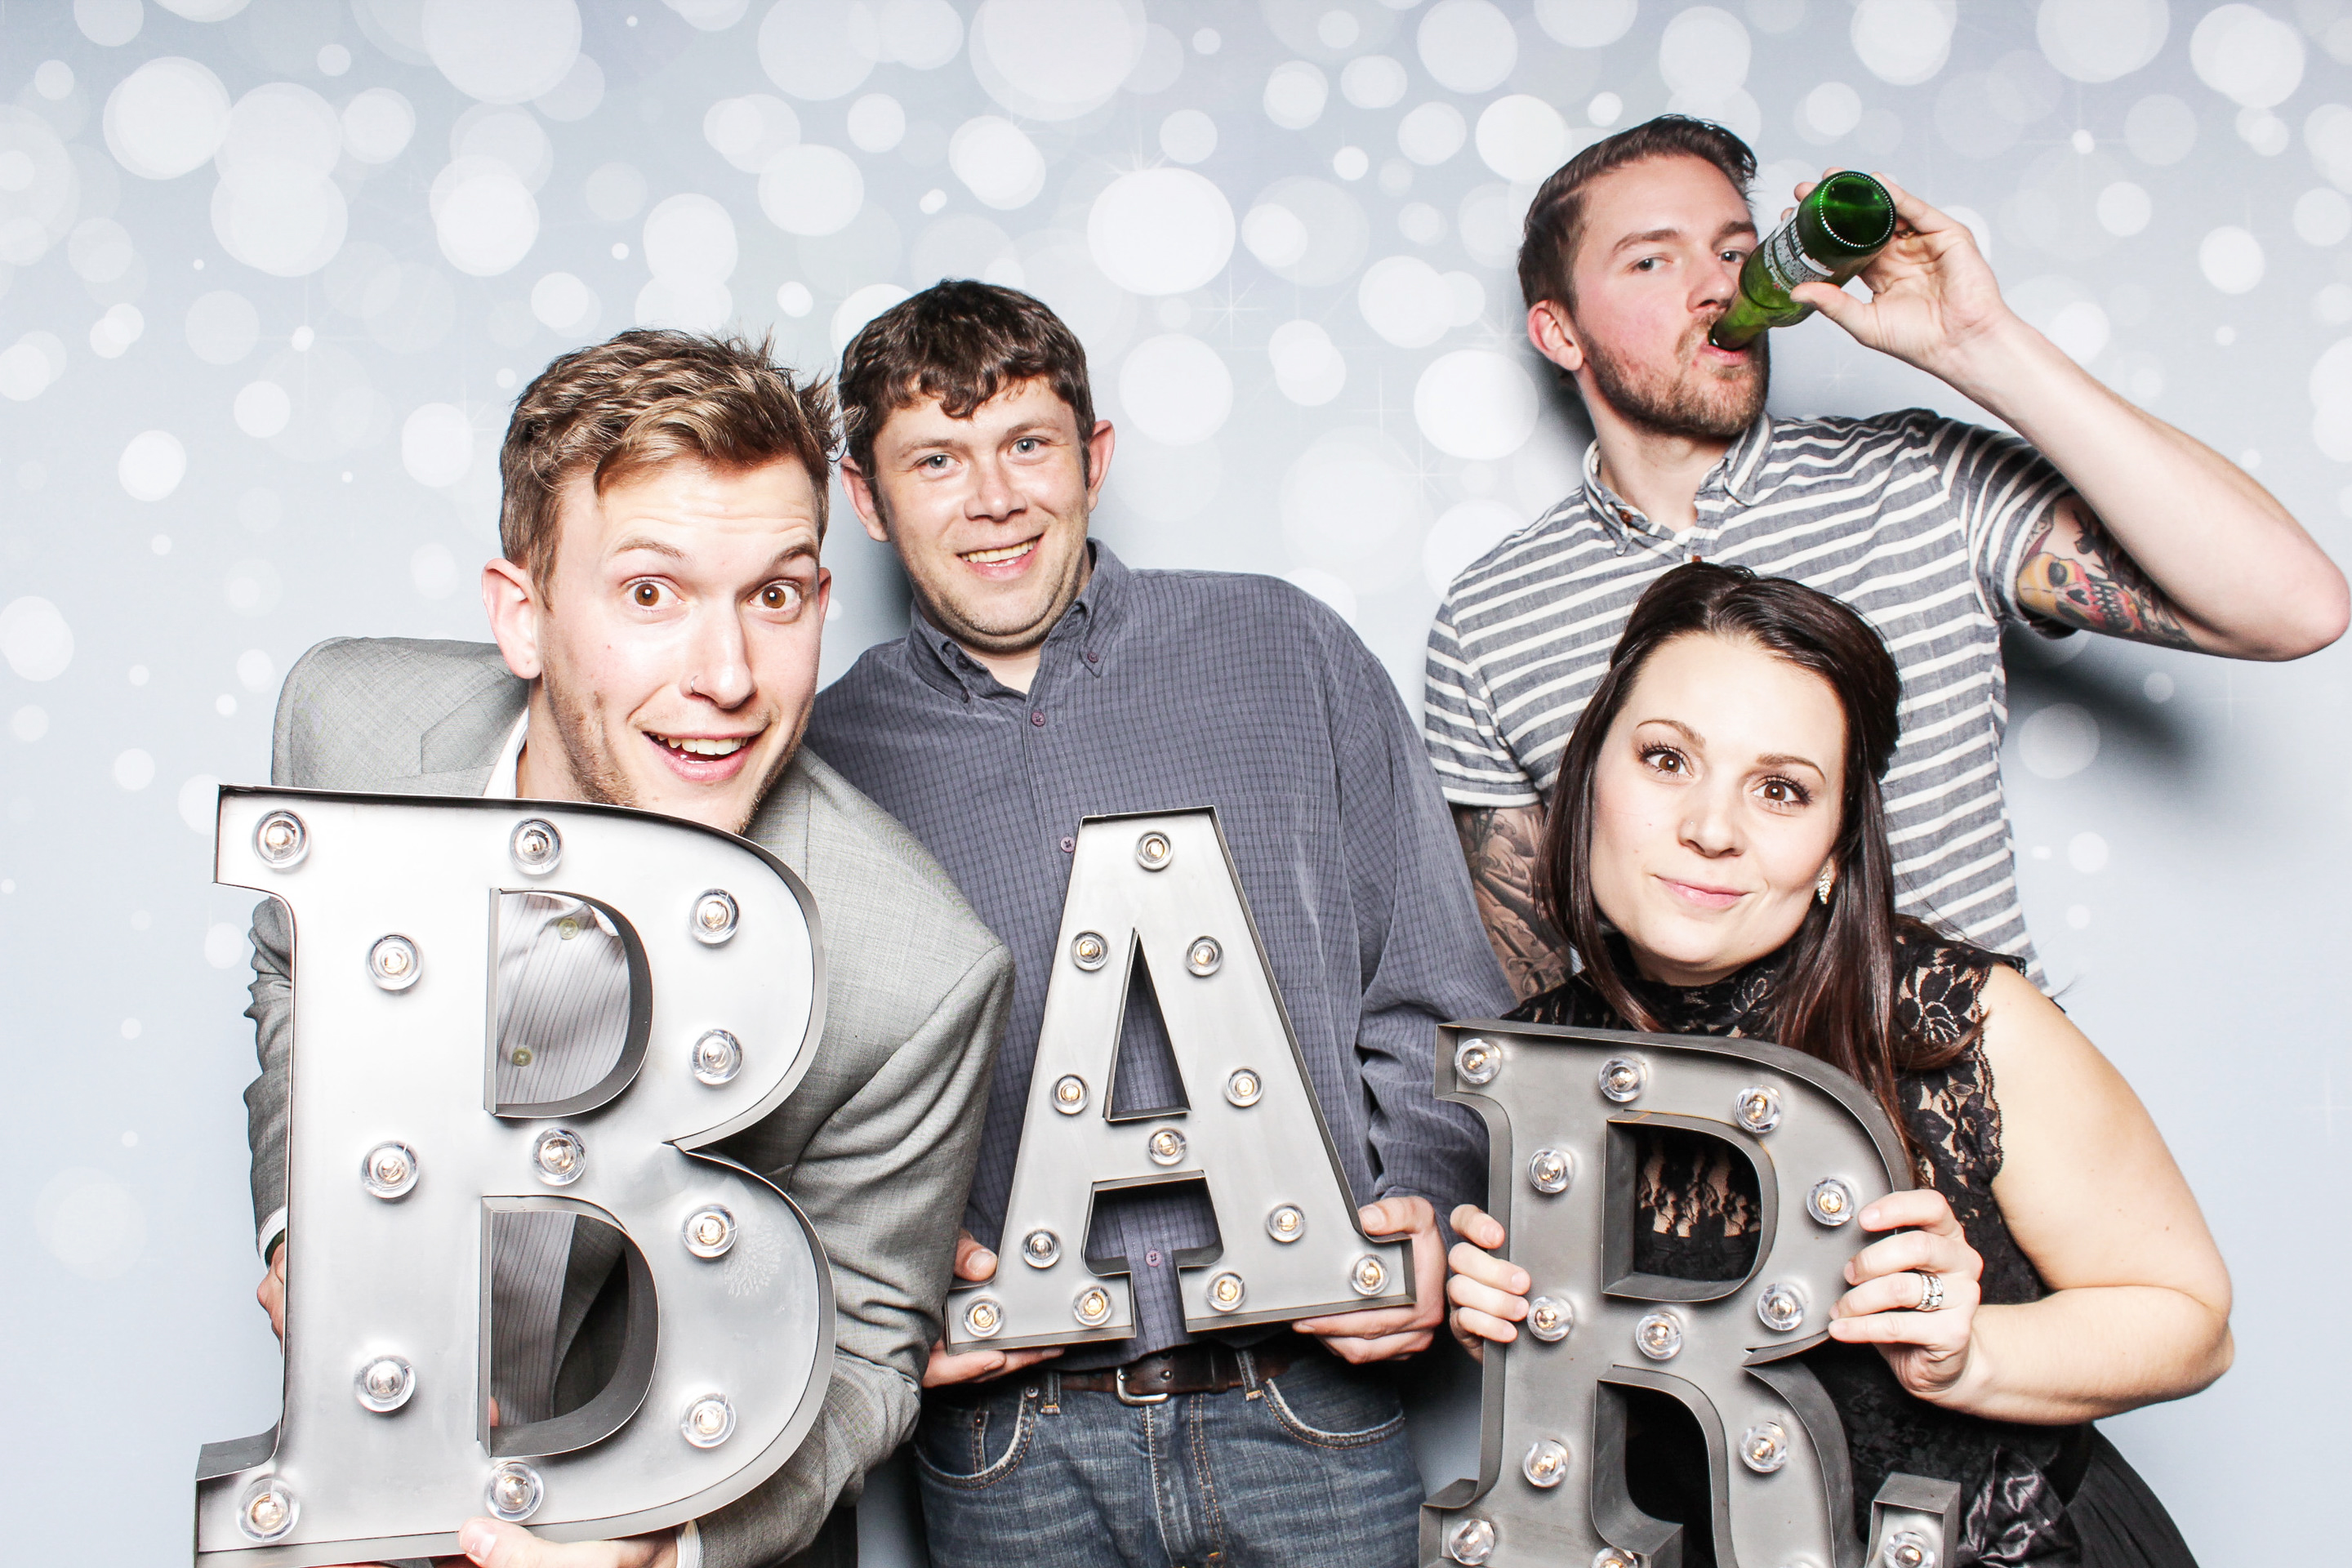 olympia-photo-booth-experiences